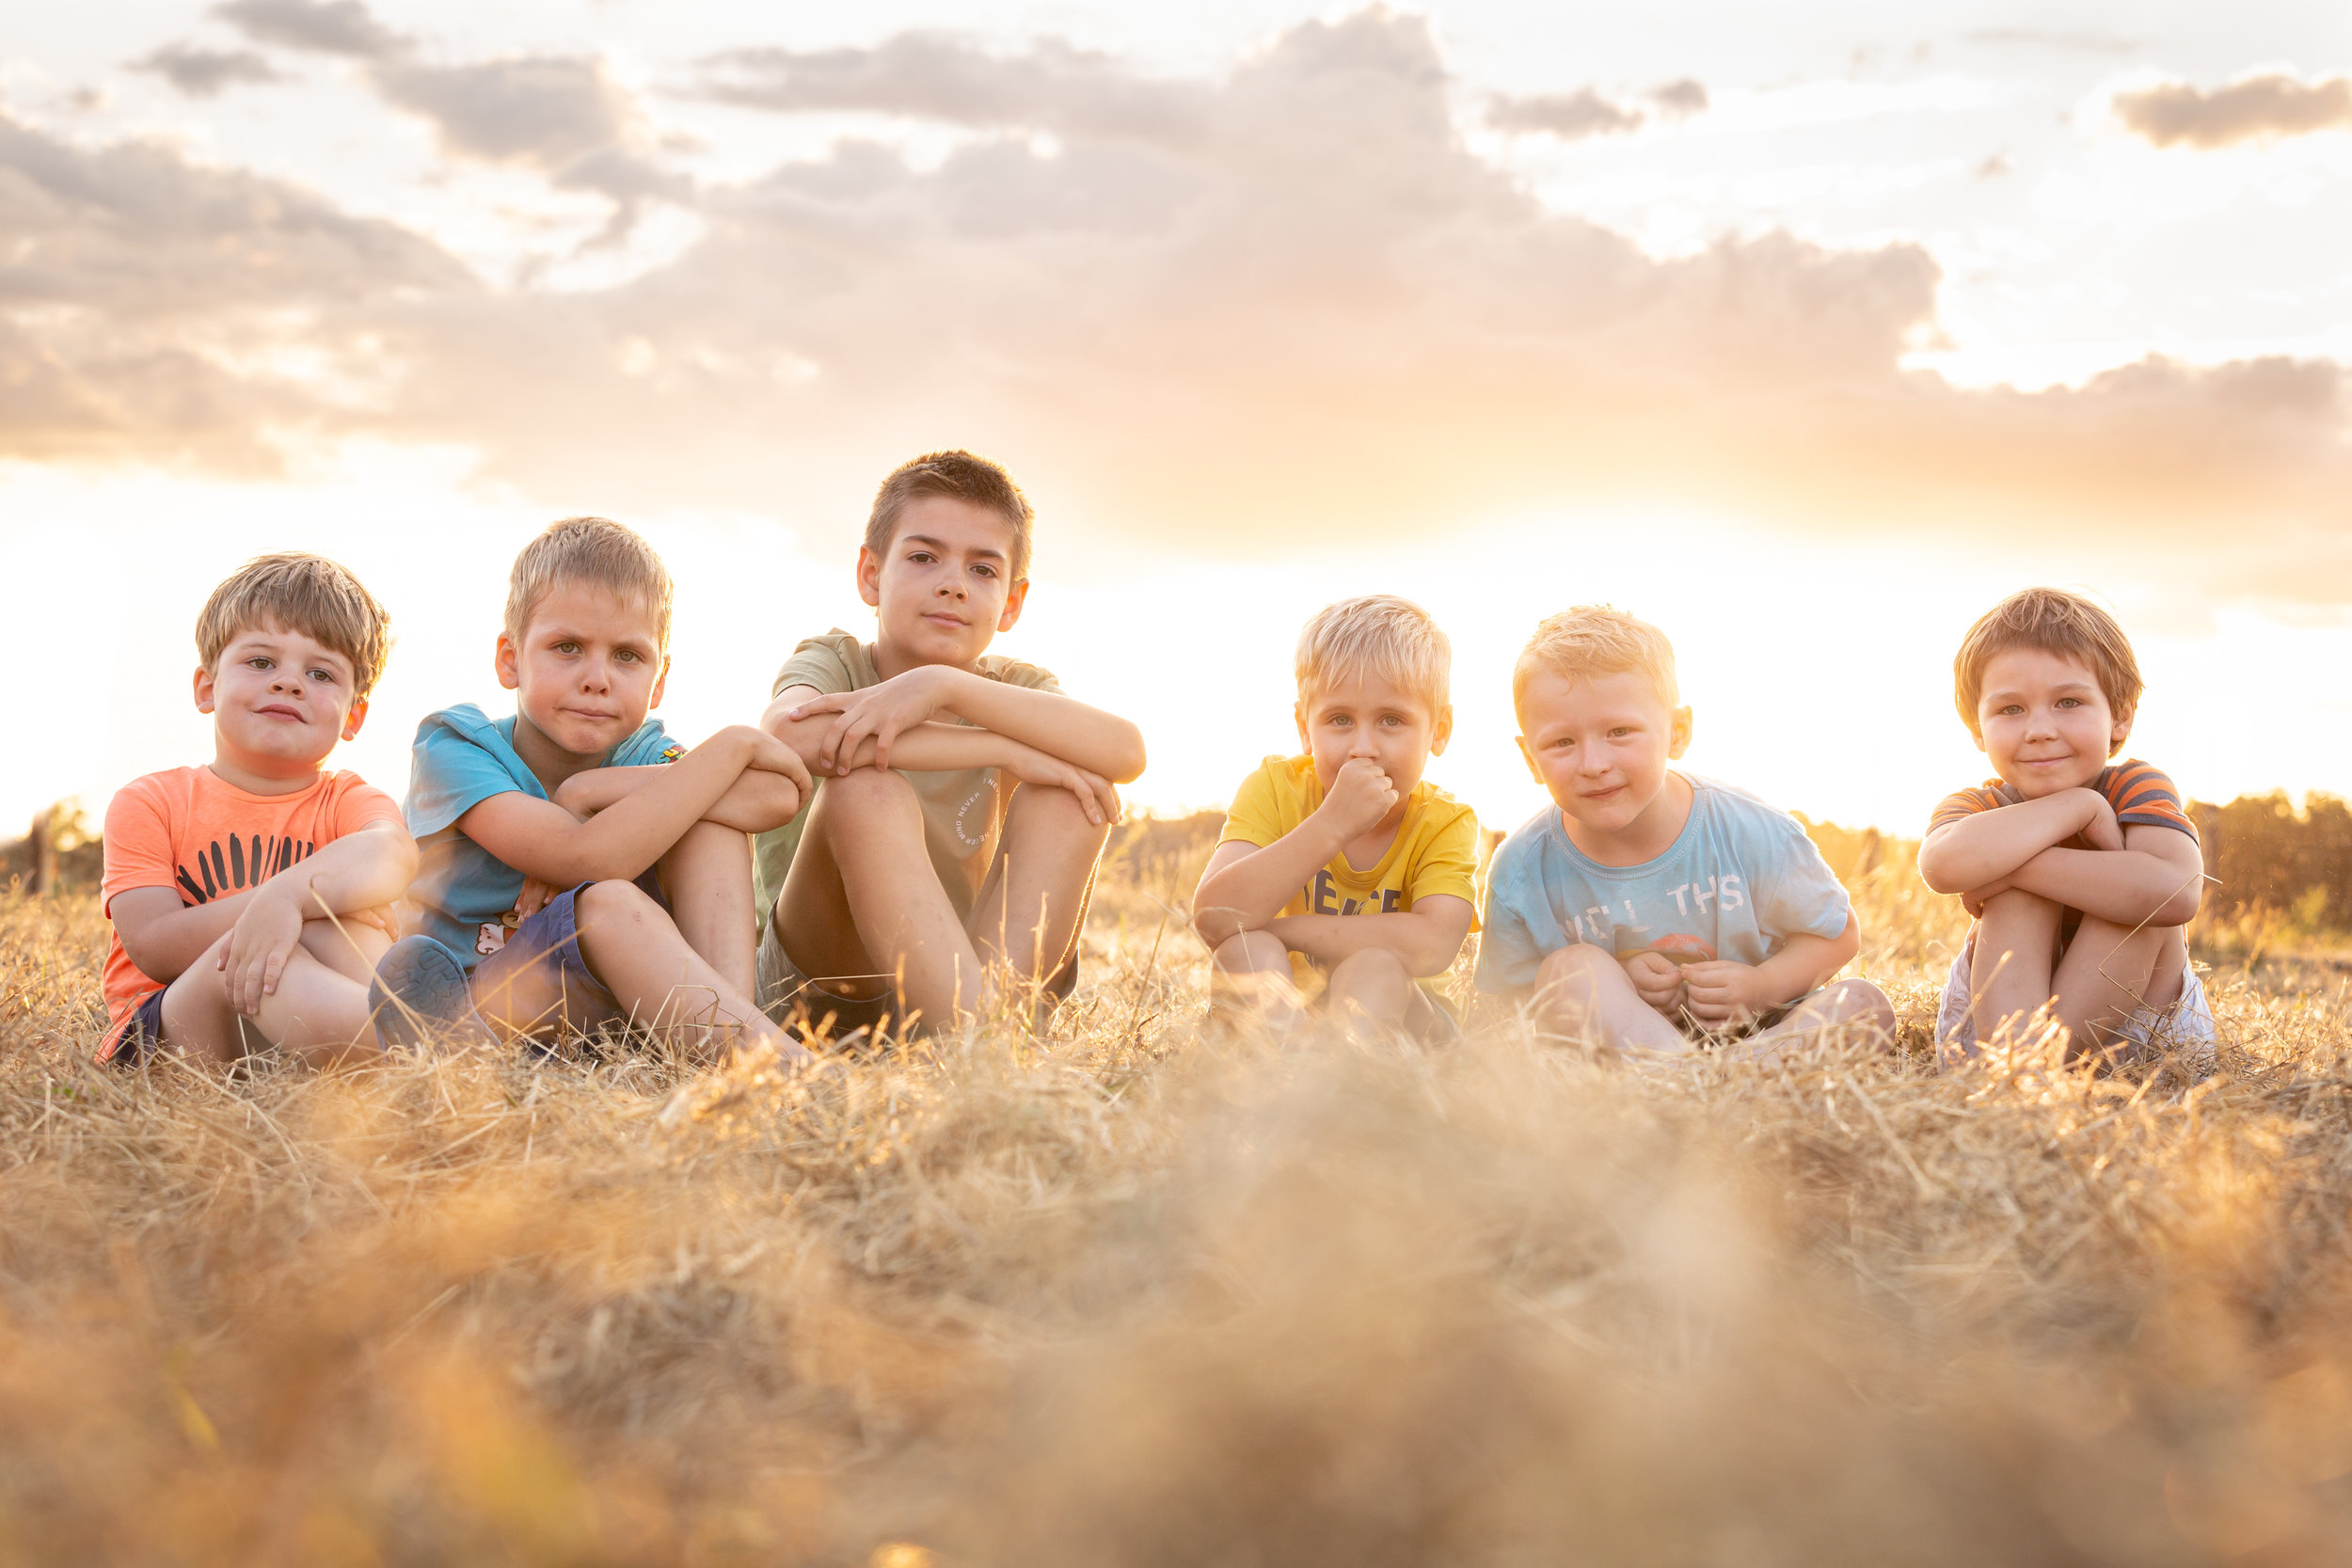 golden-hour-photography-kids-photo-session-dural